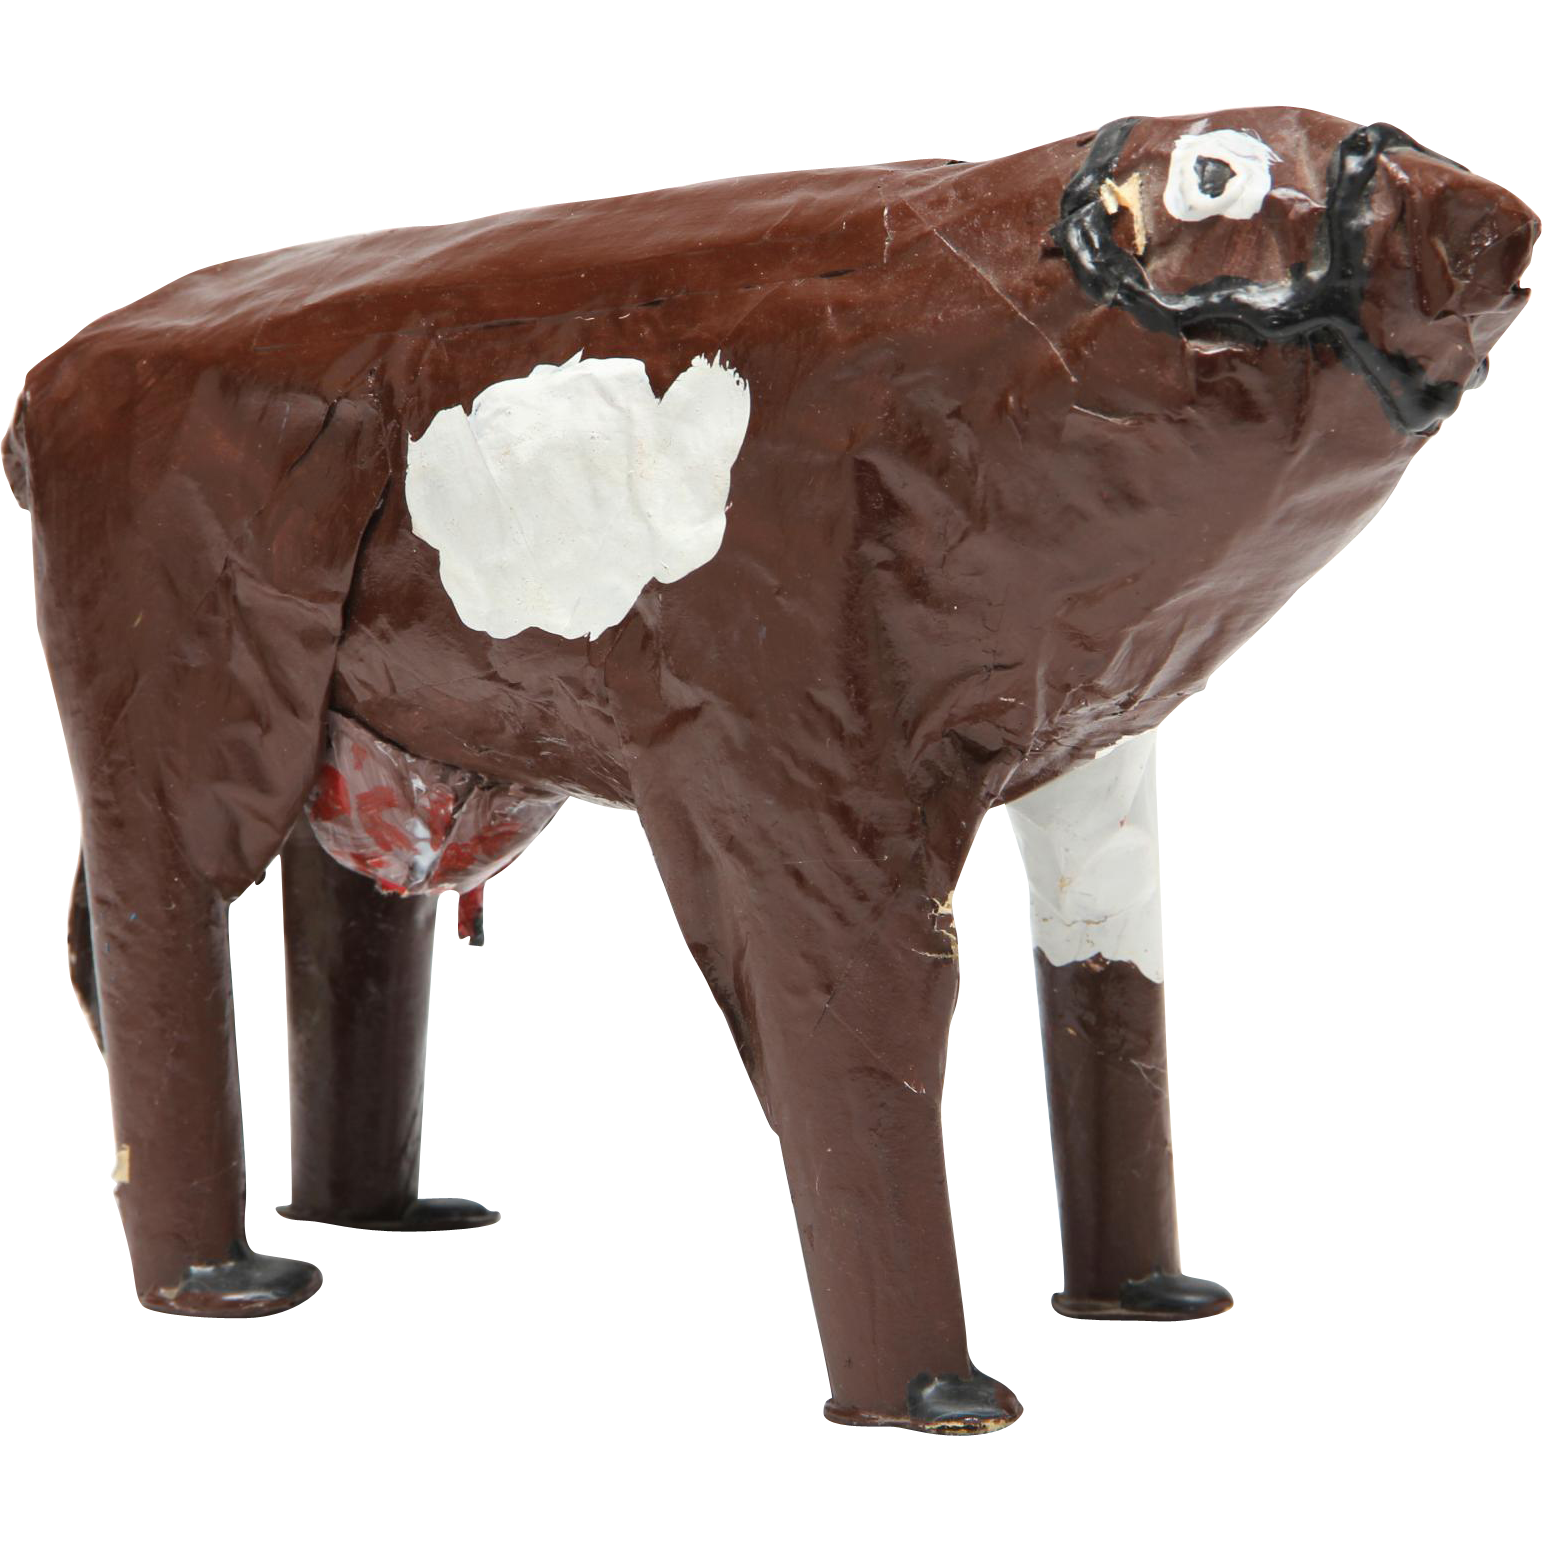 MAMA-GIRL (Mary Onley American b. 1954) - Outsider Art Cow Sculpture